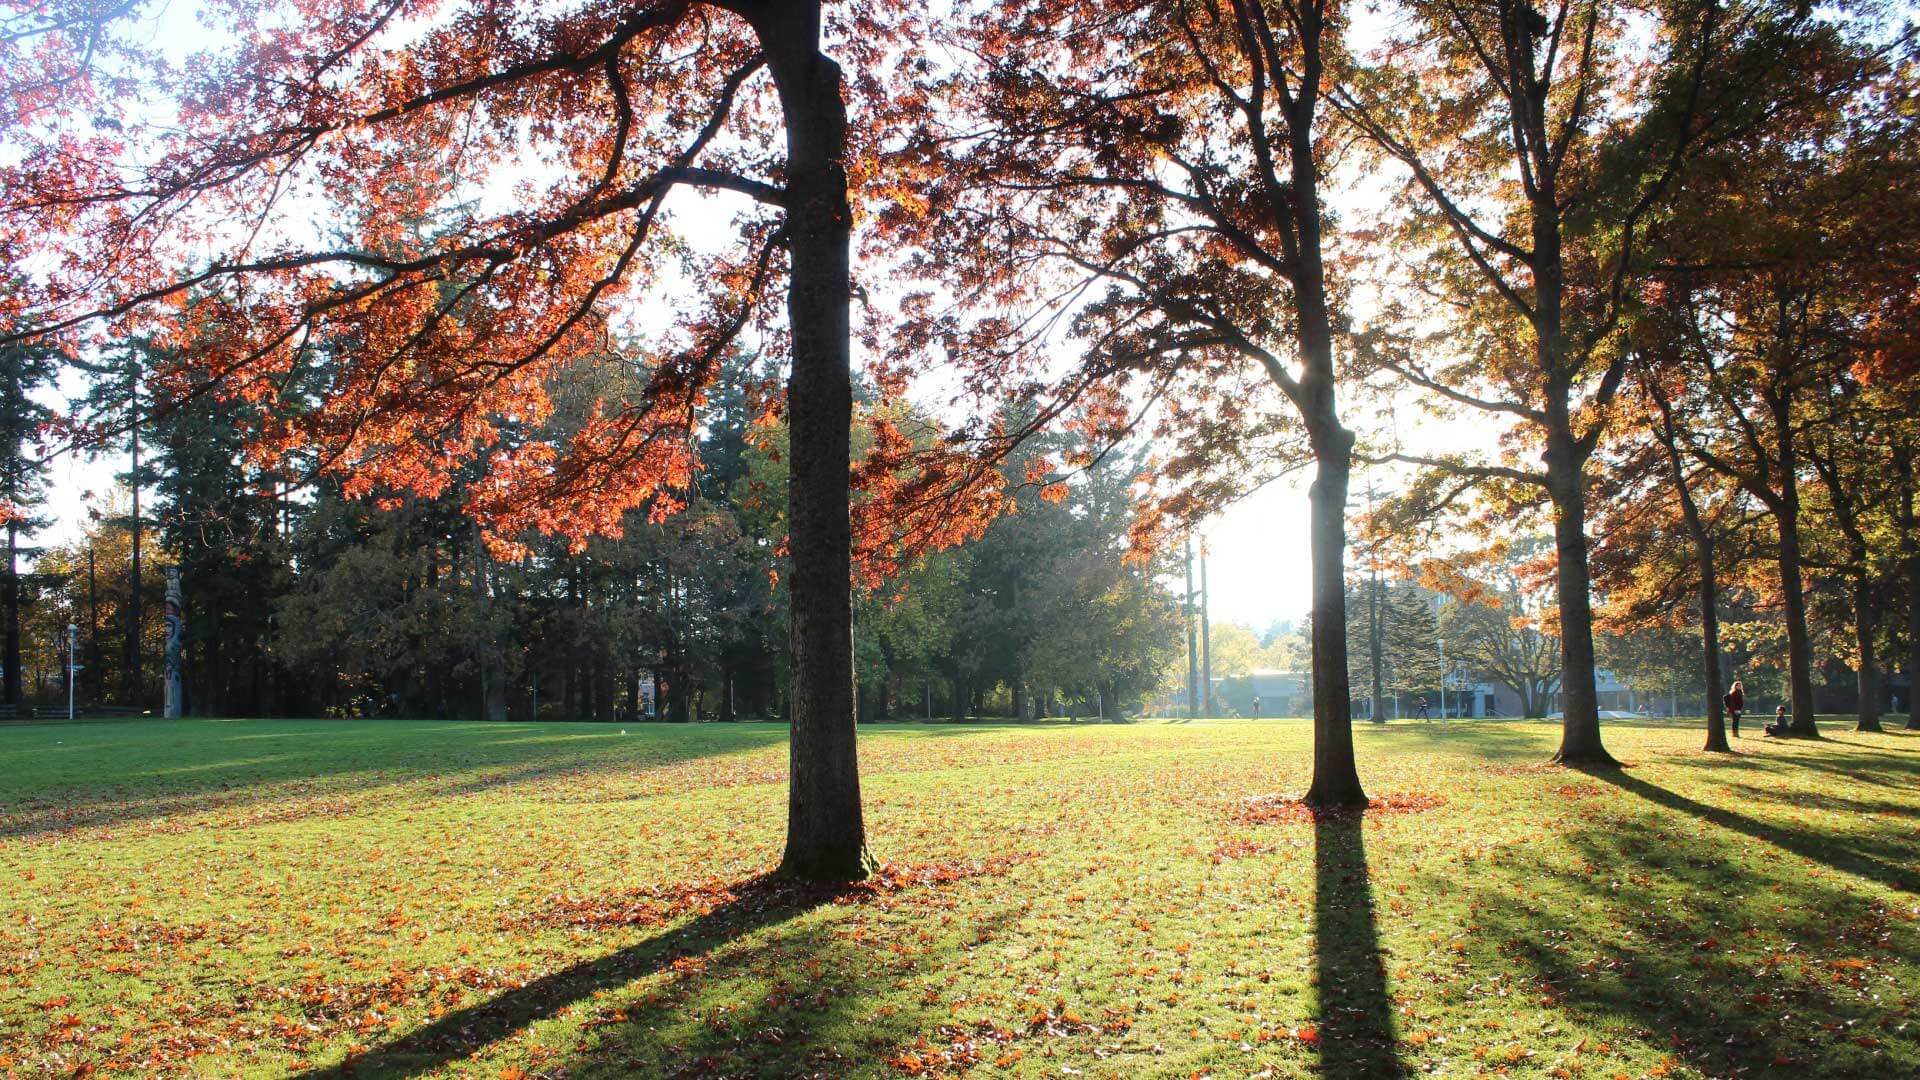 Trees beside open field with leaves and sunlight at the University of Victoria